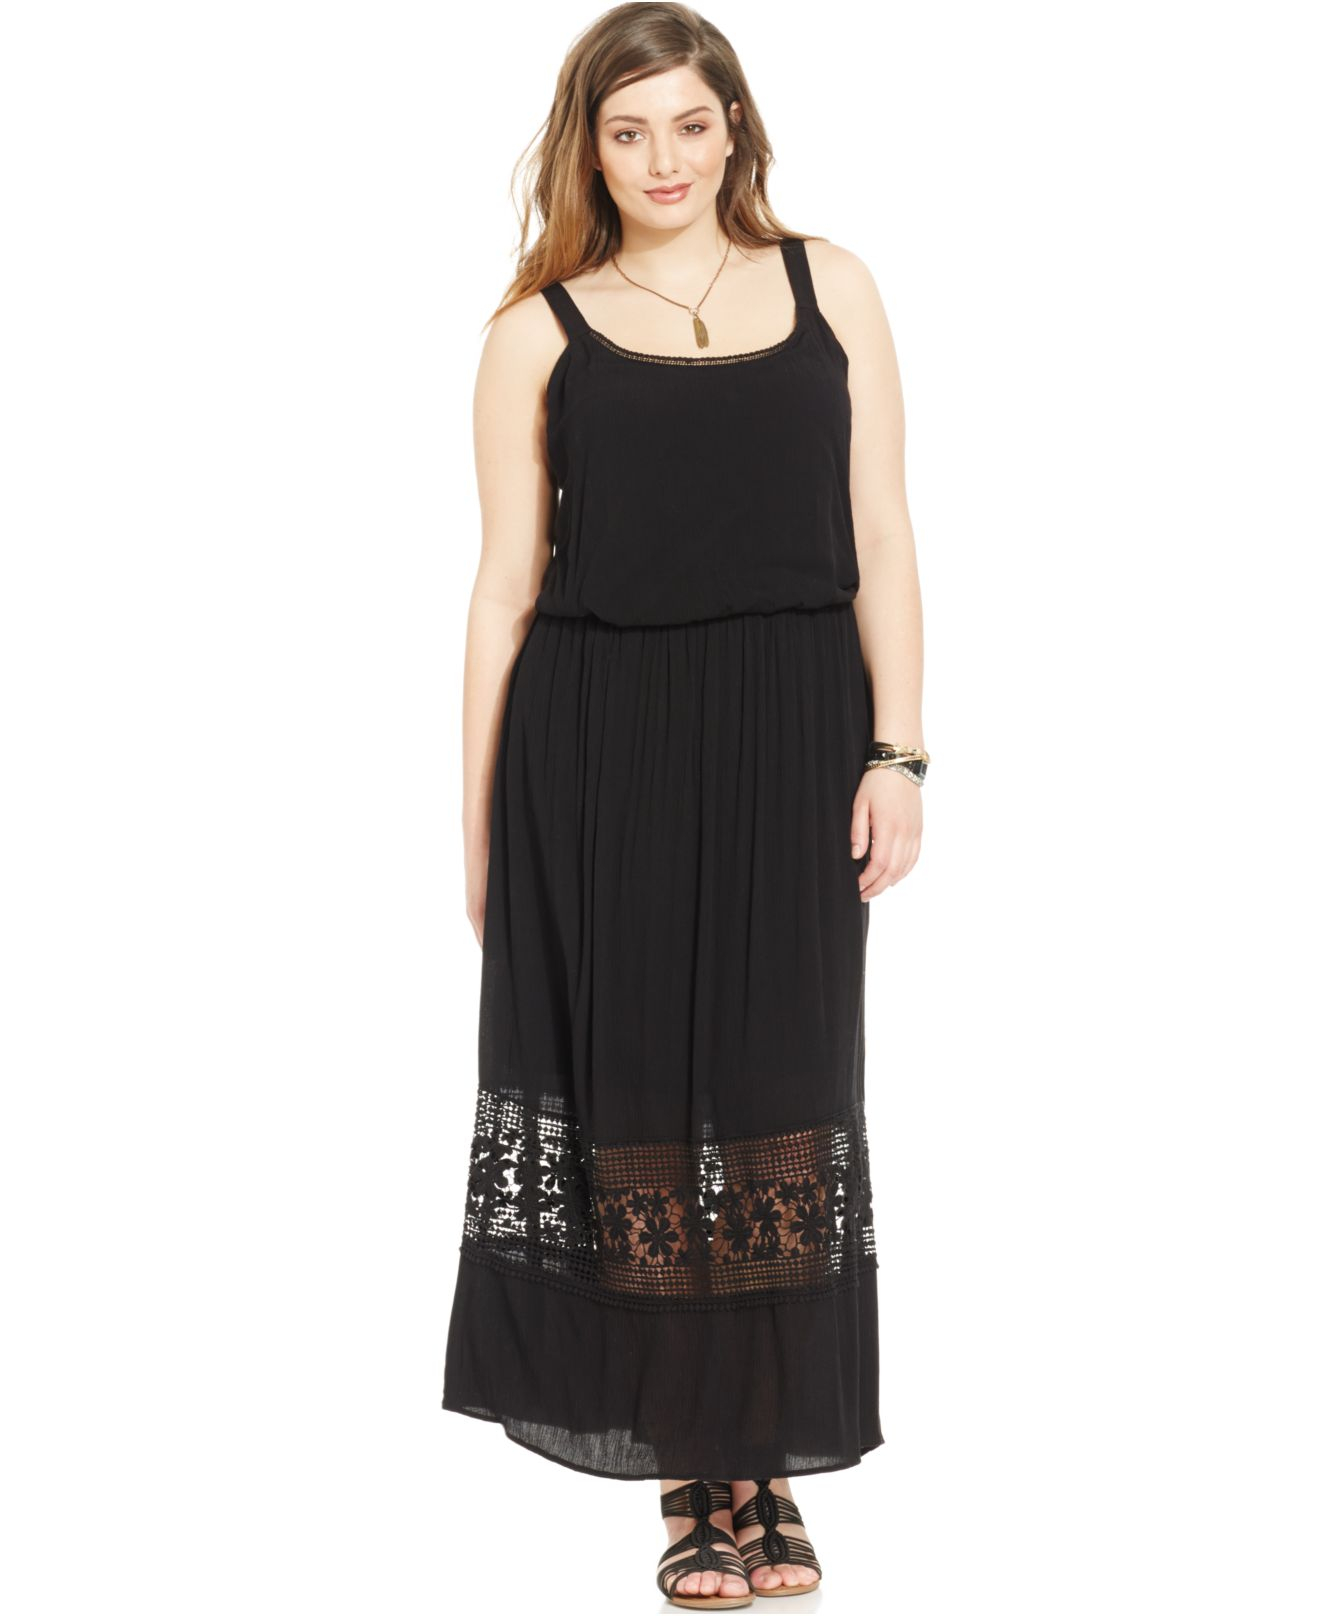 Plus Size Lace Dresses Maxi 31